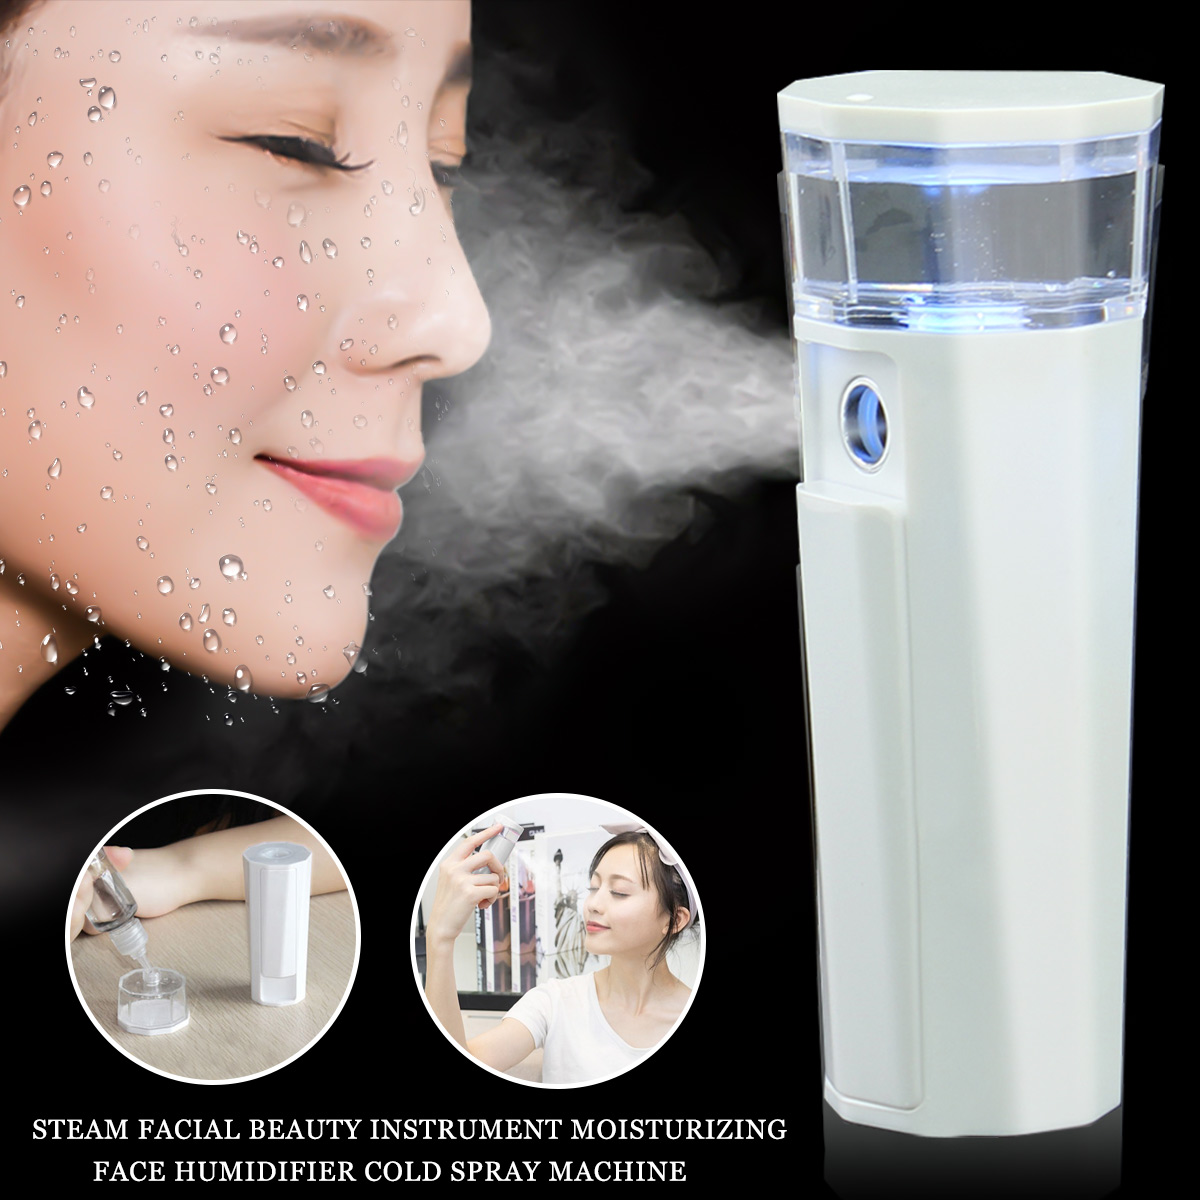 Nano-Spray Beauty Instrument USB Rechargeable Portable Facial Steam Moisturizer Beauty Tools SKU793946